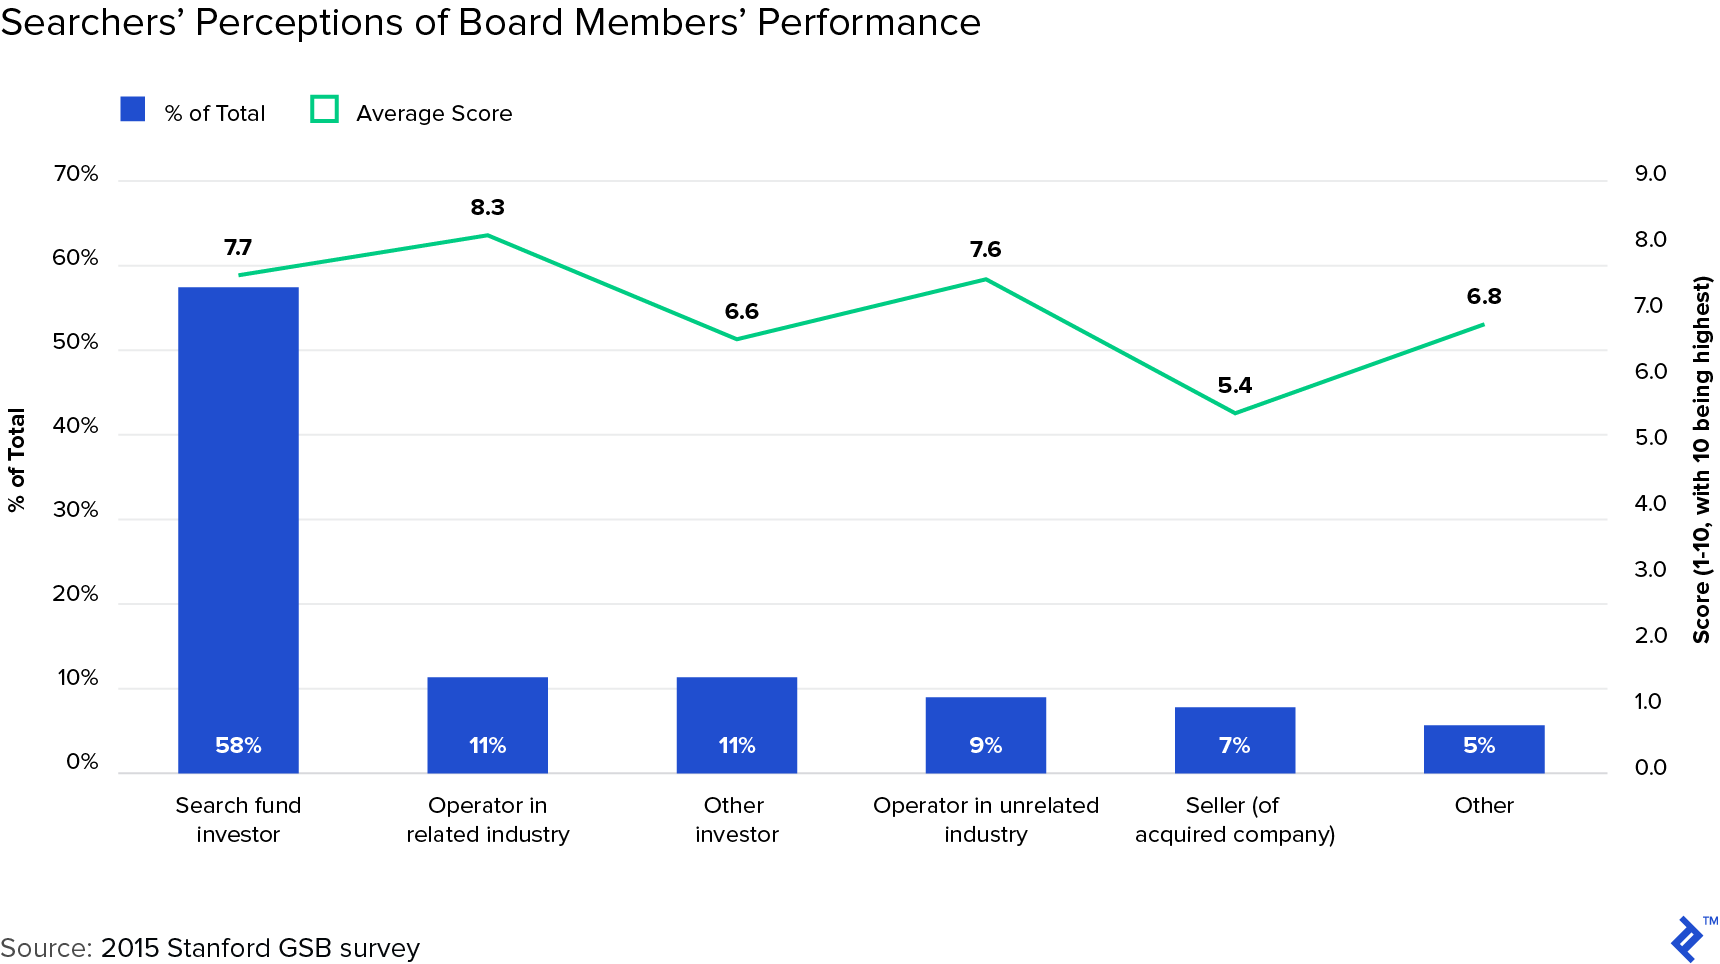 Graph: Searchers' Perceptions of Board Members' Performance